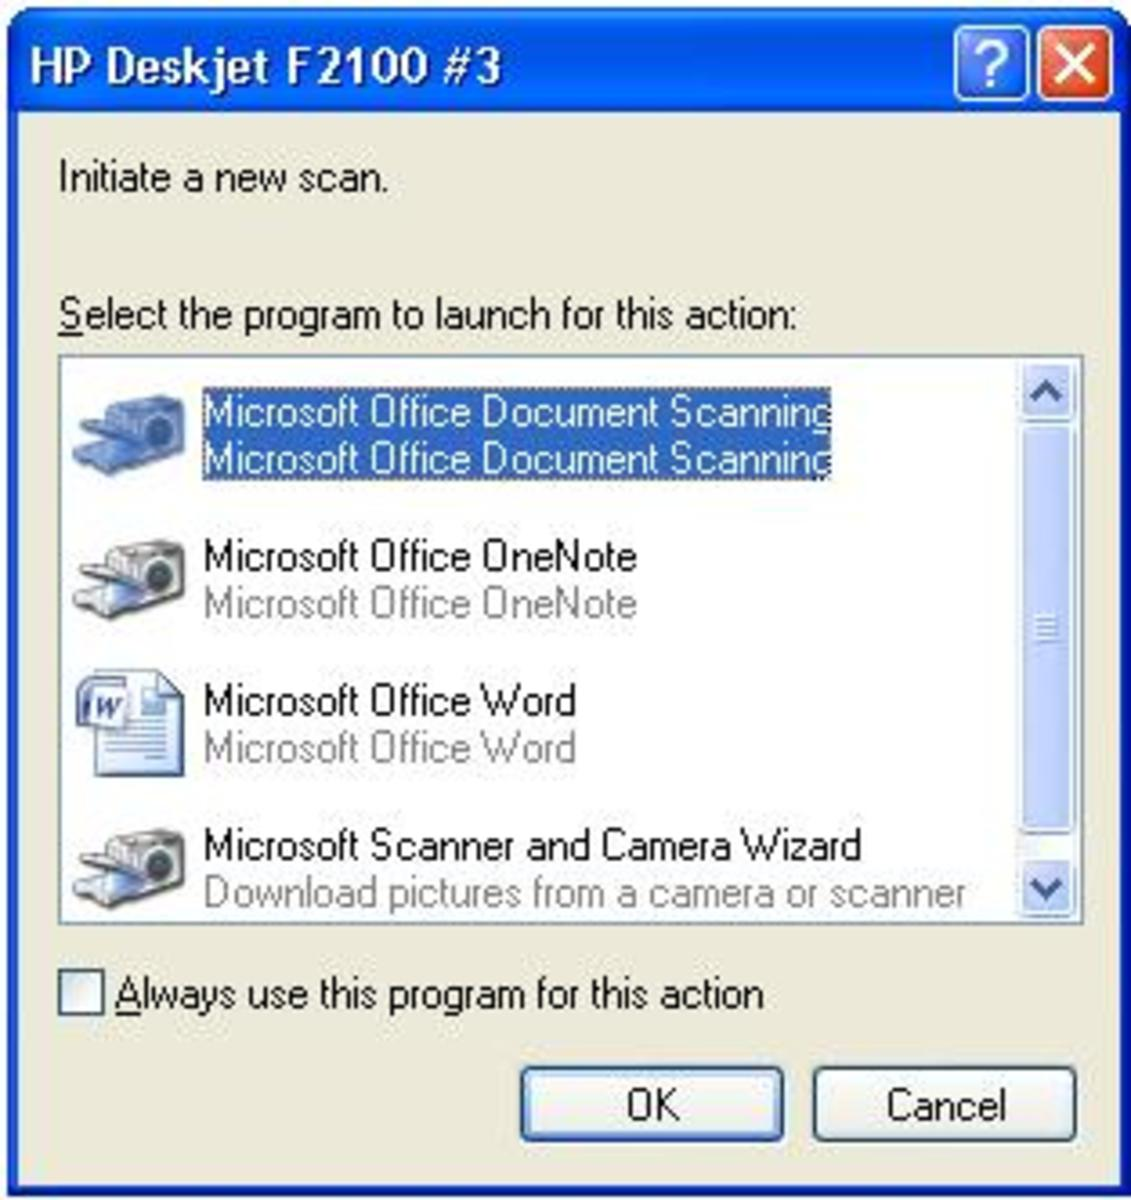 Select Microsoft Office Document Imaging